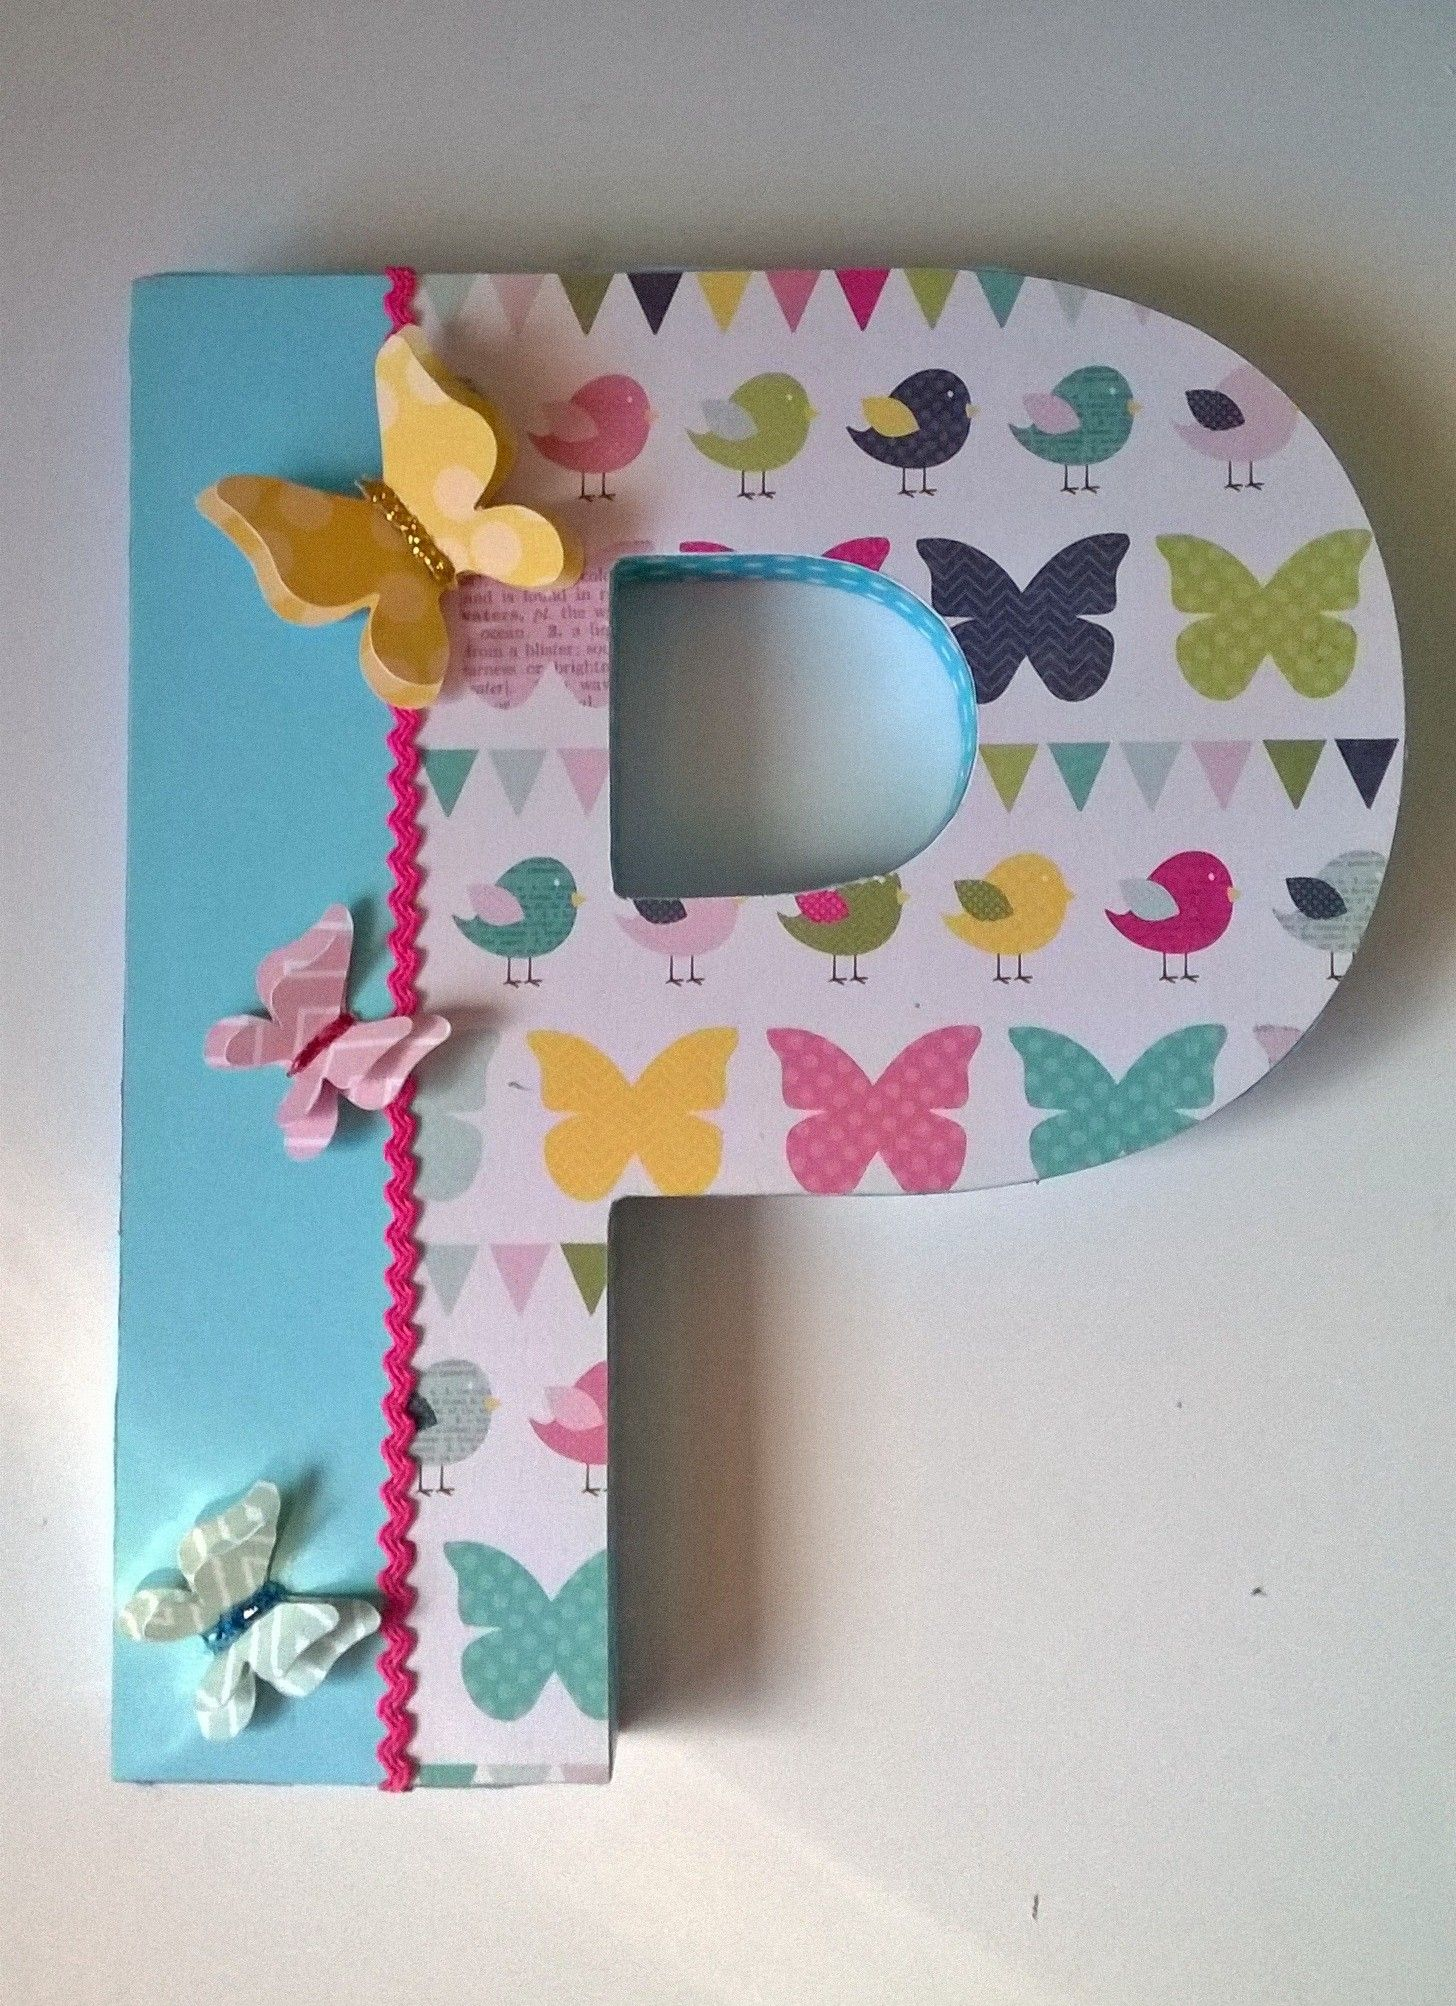 Letras Decoradas Scrap Letras Decoradas Altered Letter Scrapbook Scrap